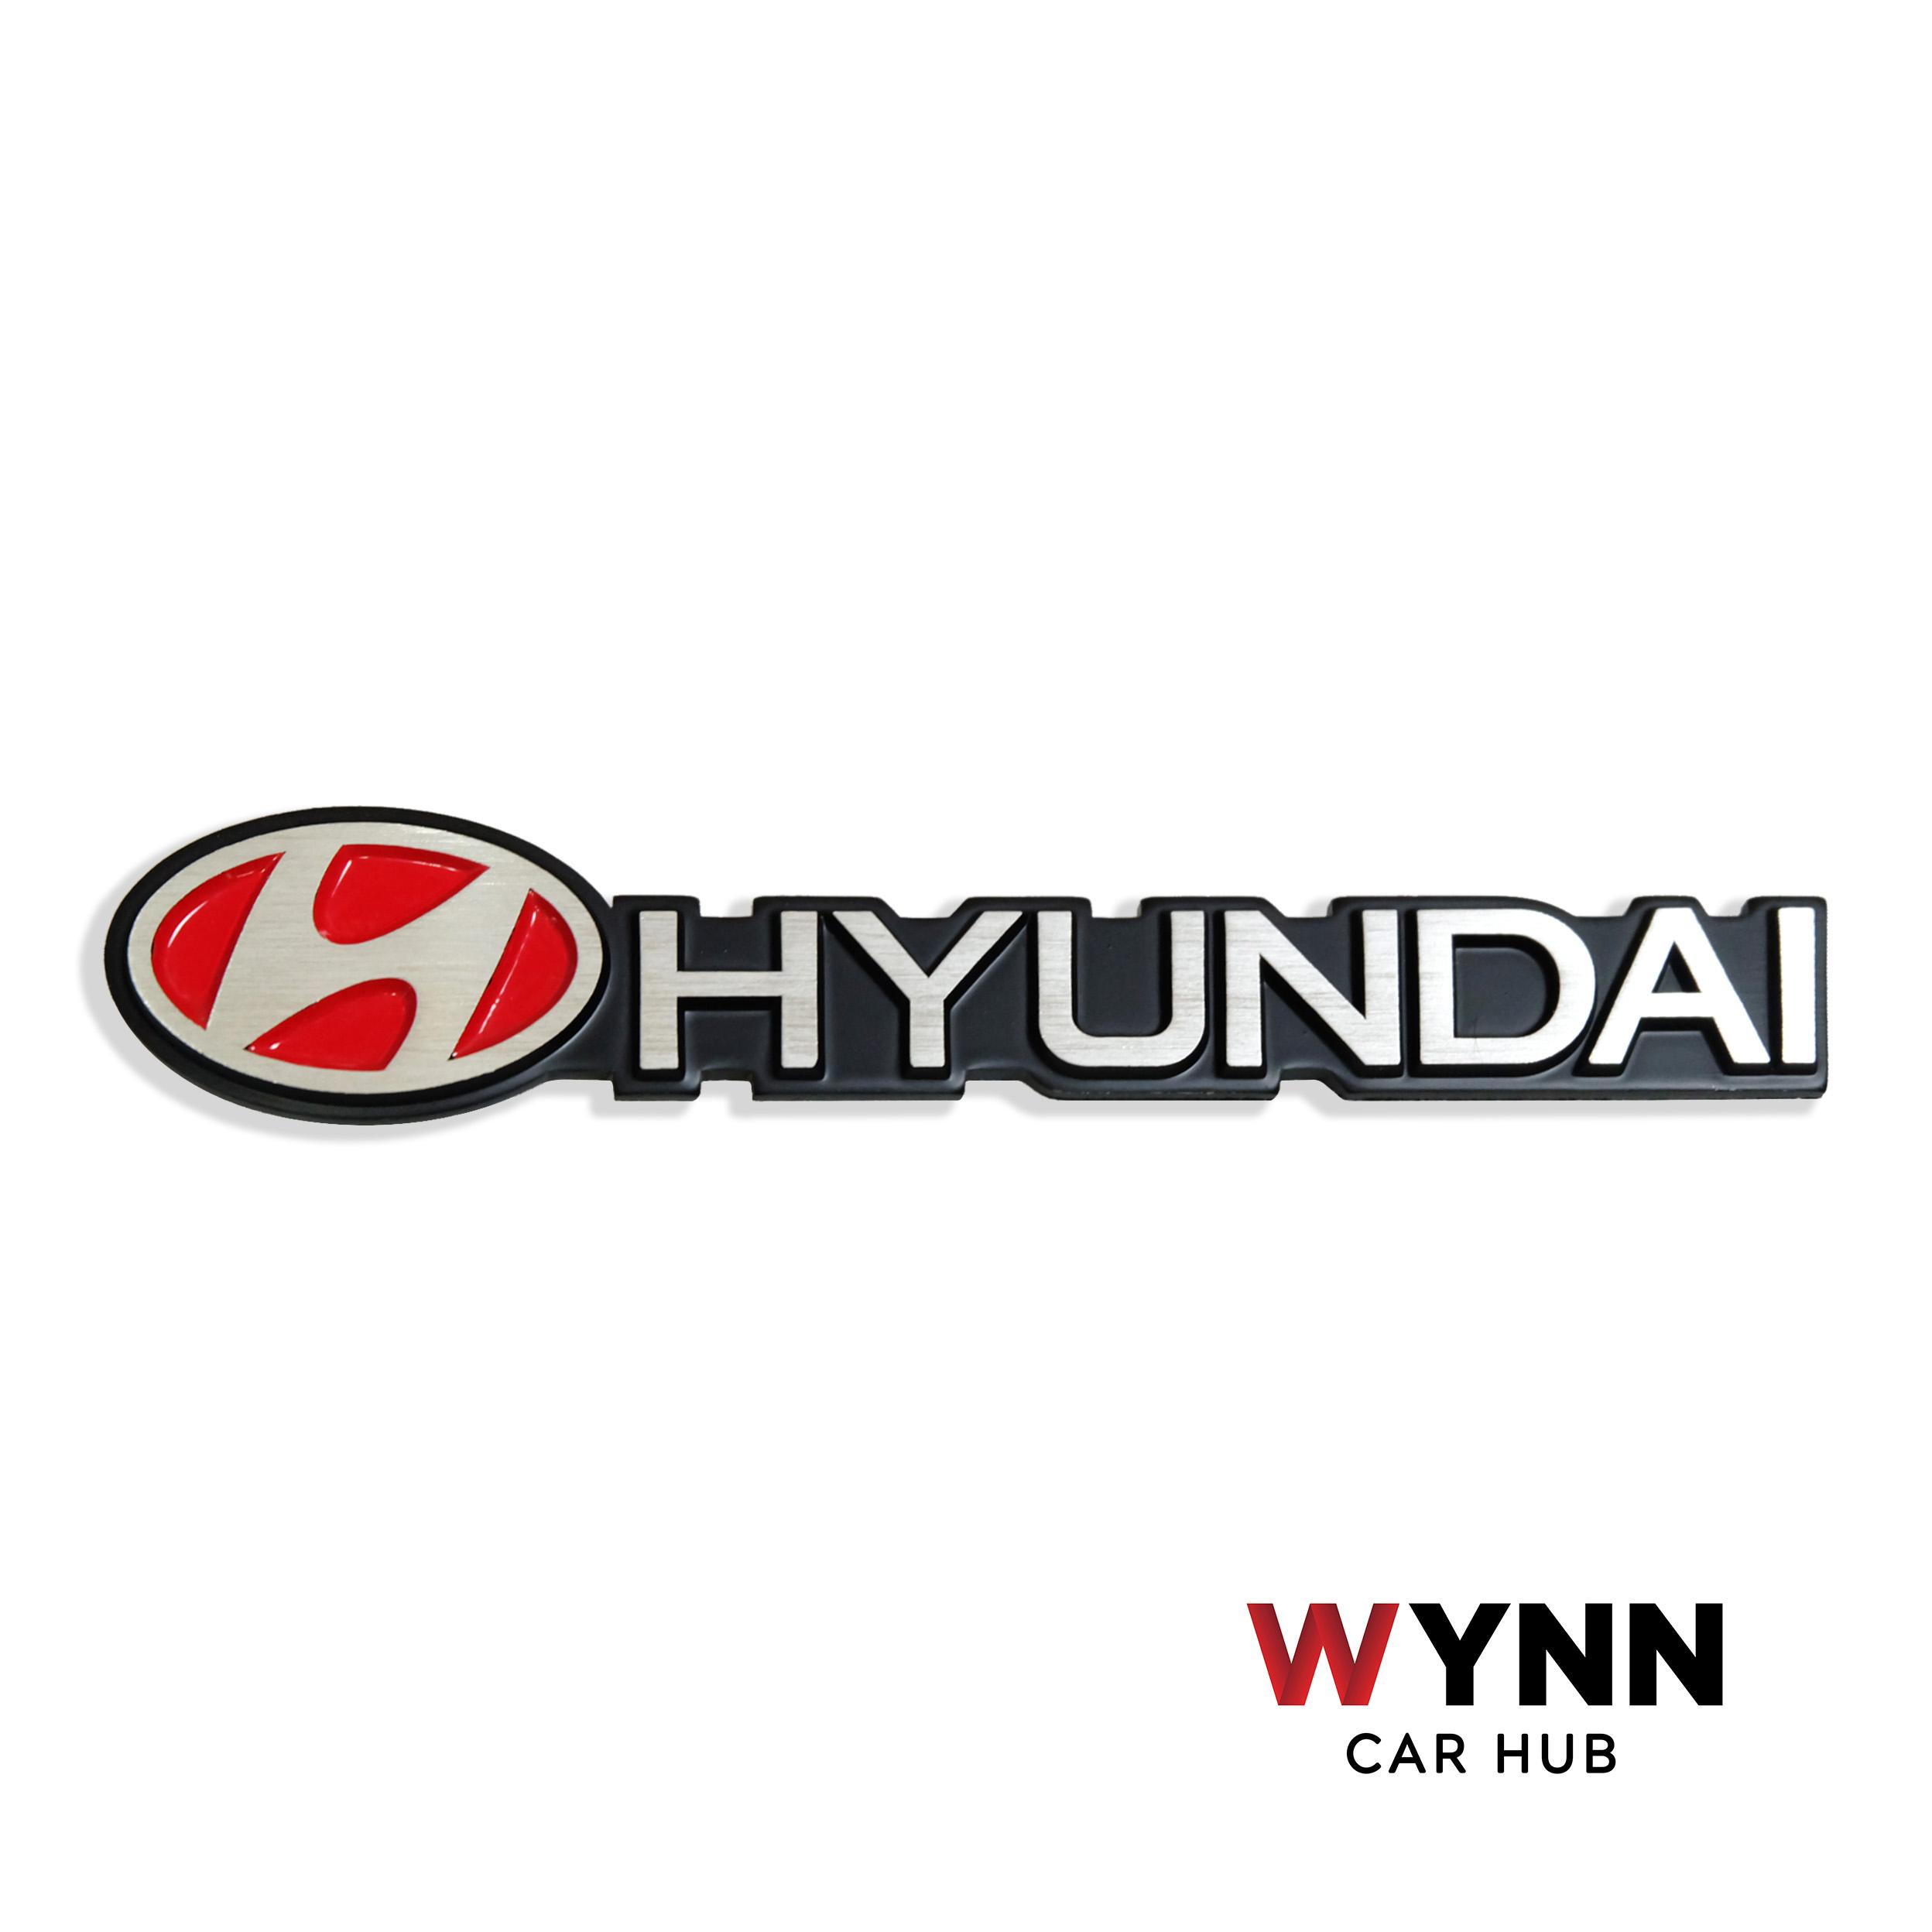 Hyundai Metal Alloy Emblem By Wynn Cars Ph.